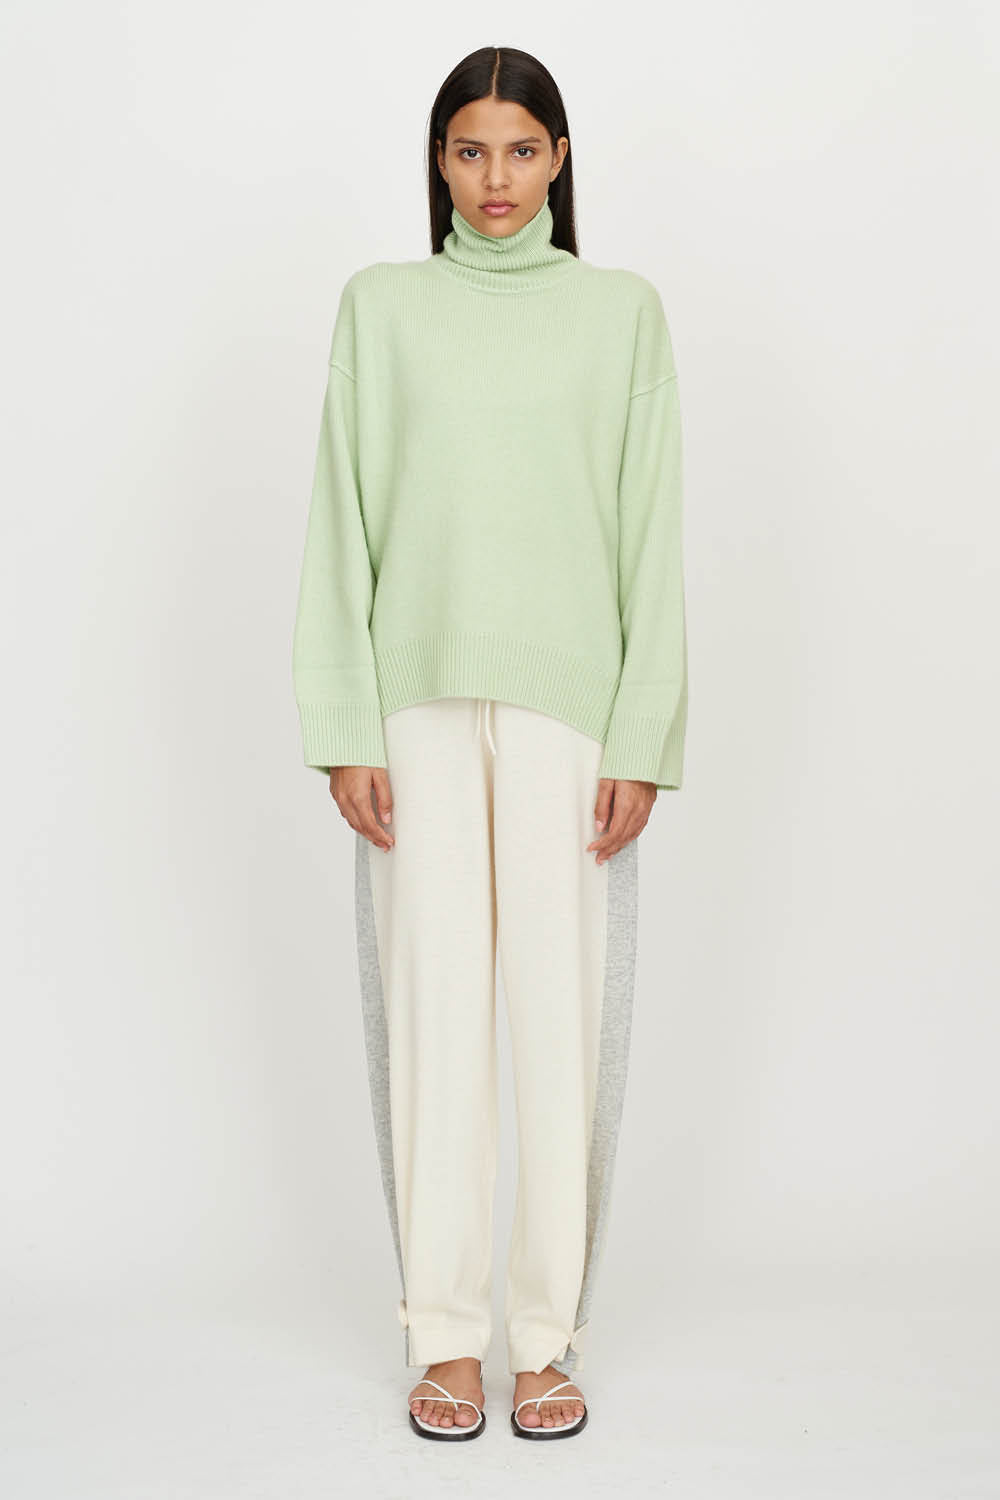 Oversized Jumper in Mint